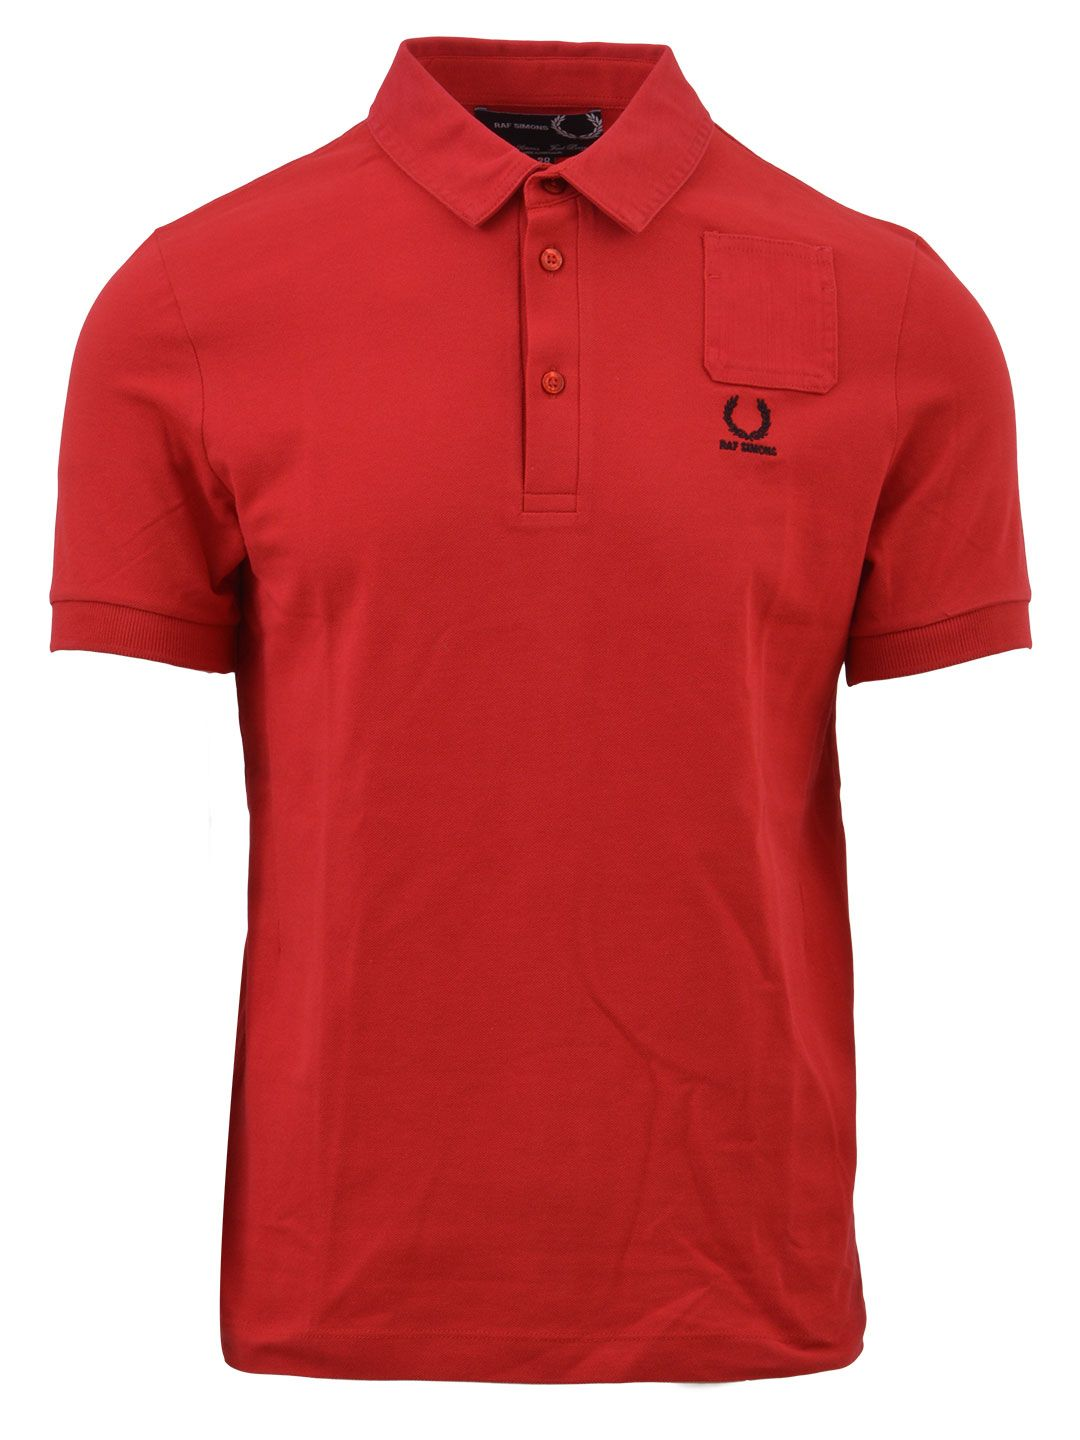 100% top quality wholesale classic Red Polo Shirt